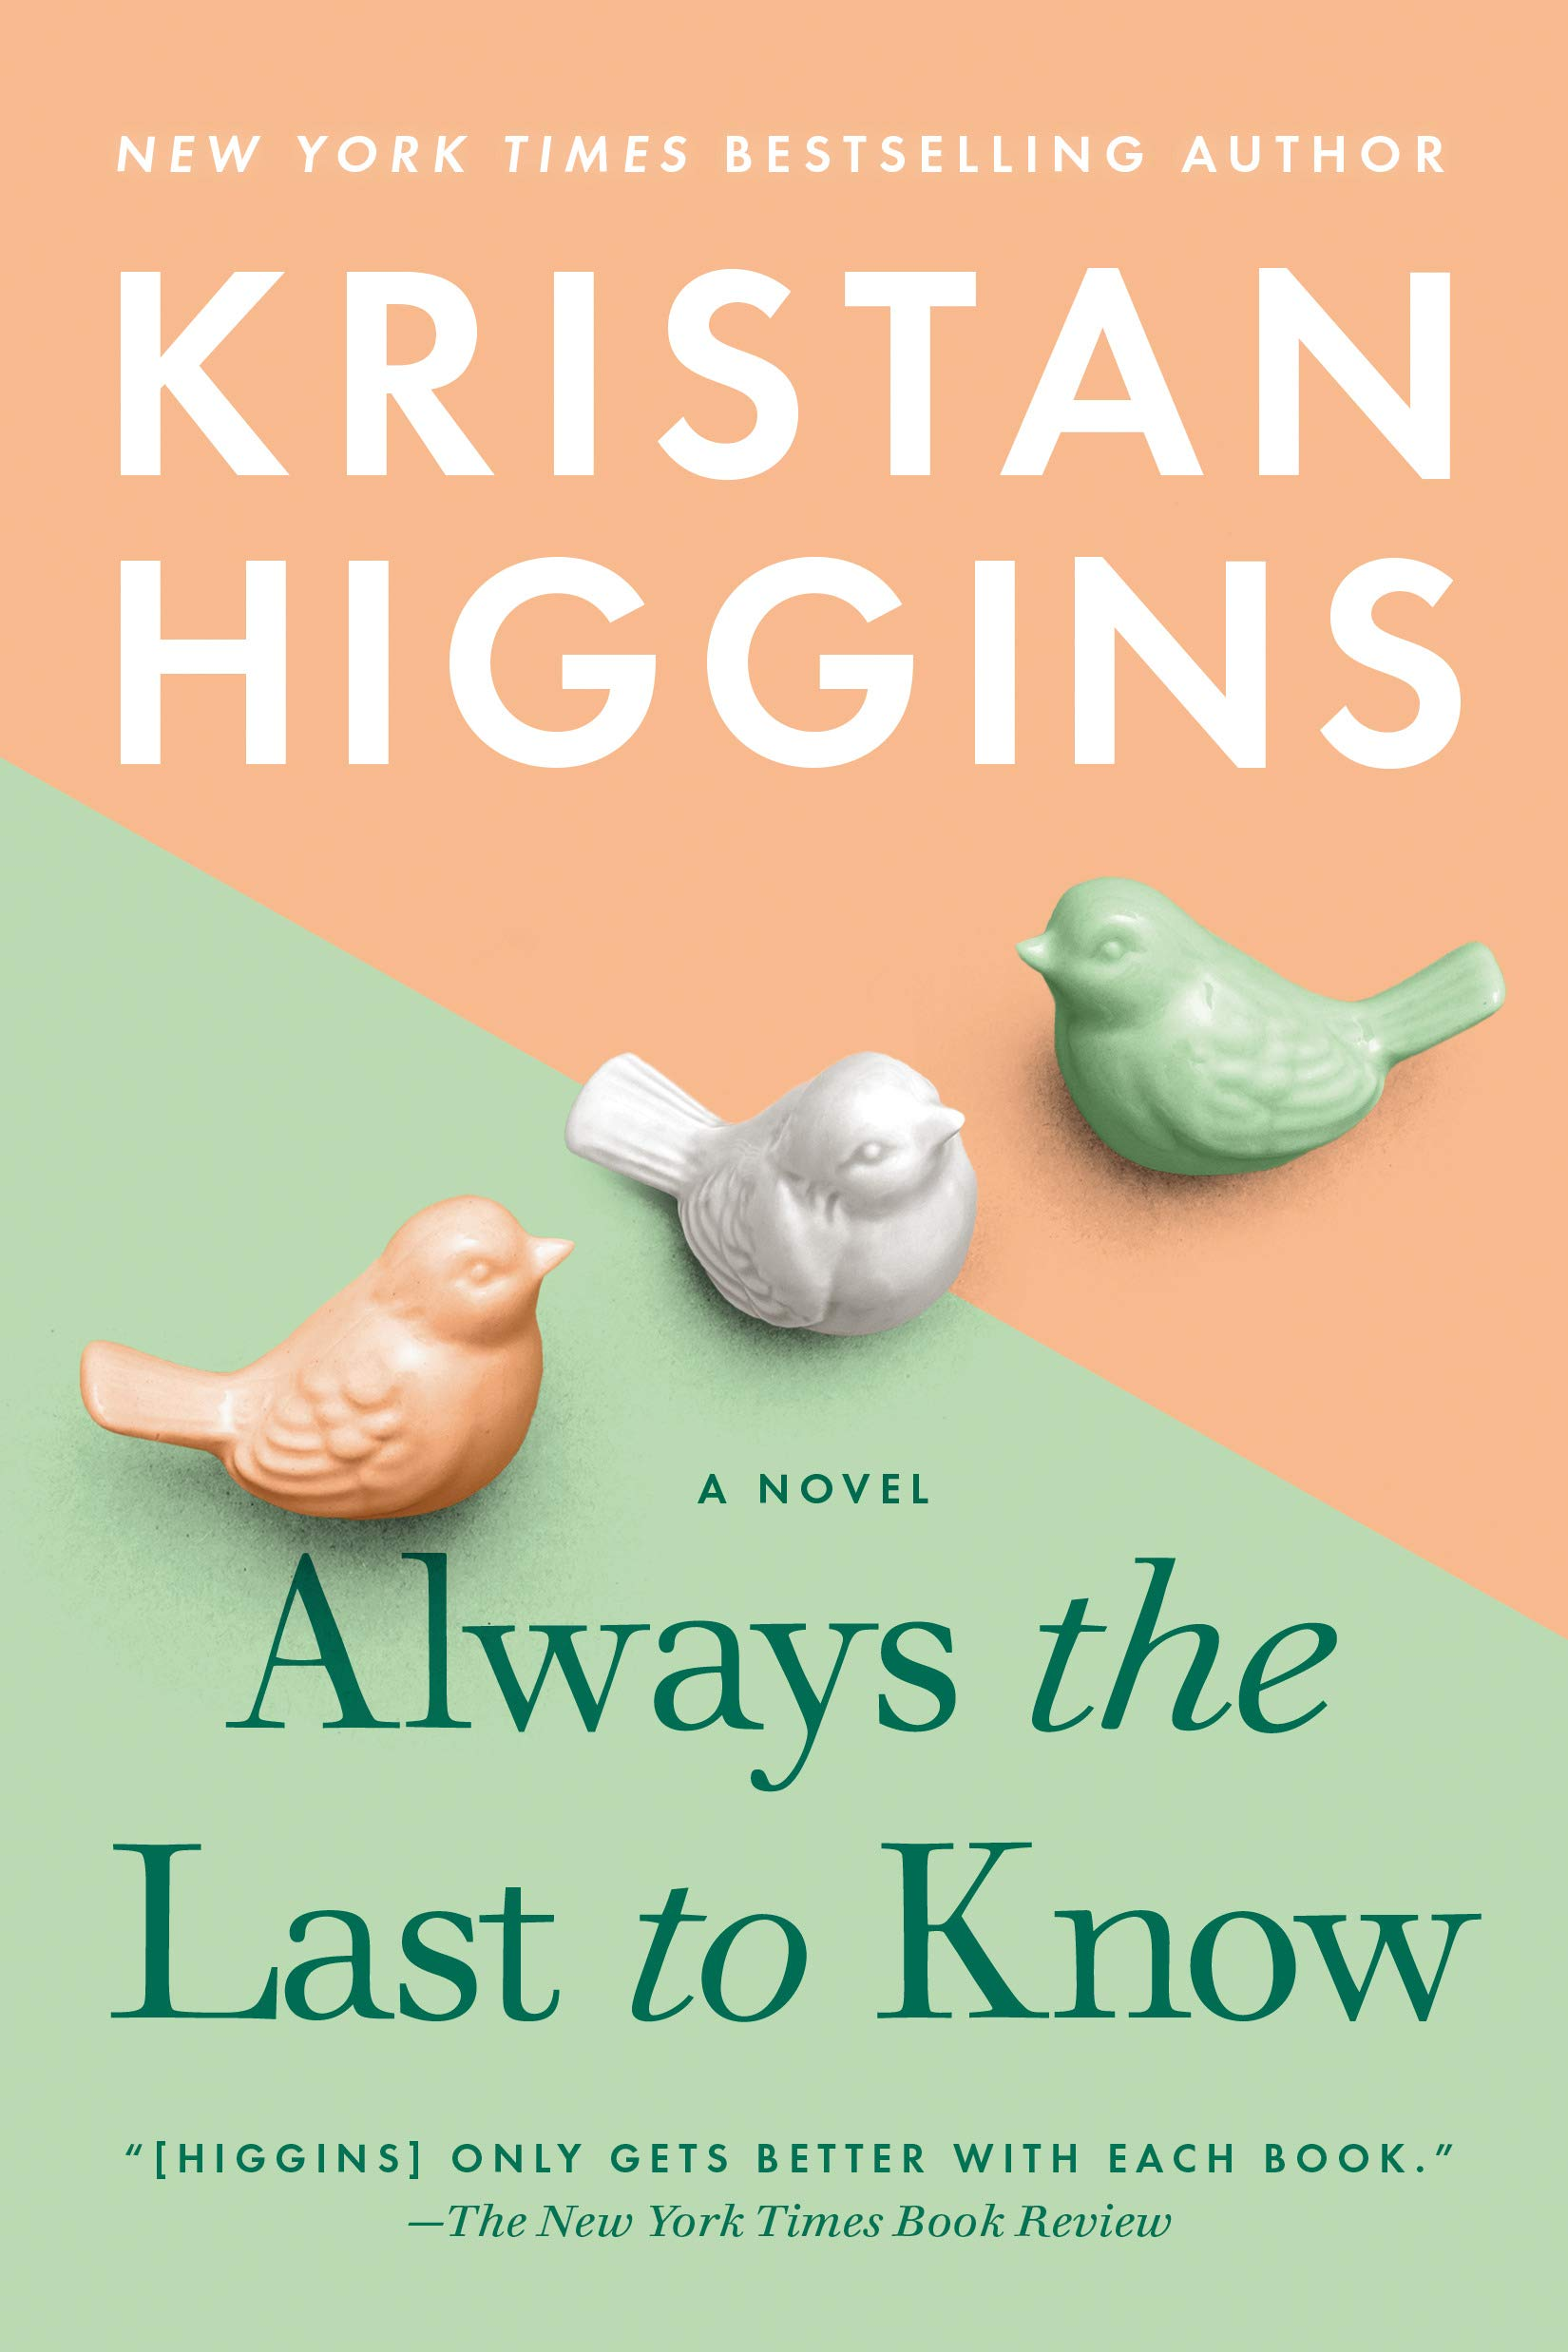 Always the Last to Know: Higgins, Kristan: 9780451489456: Amazon.com: Books